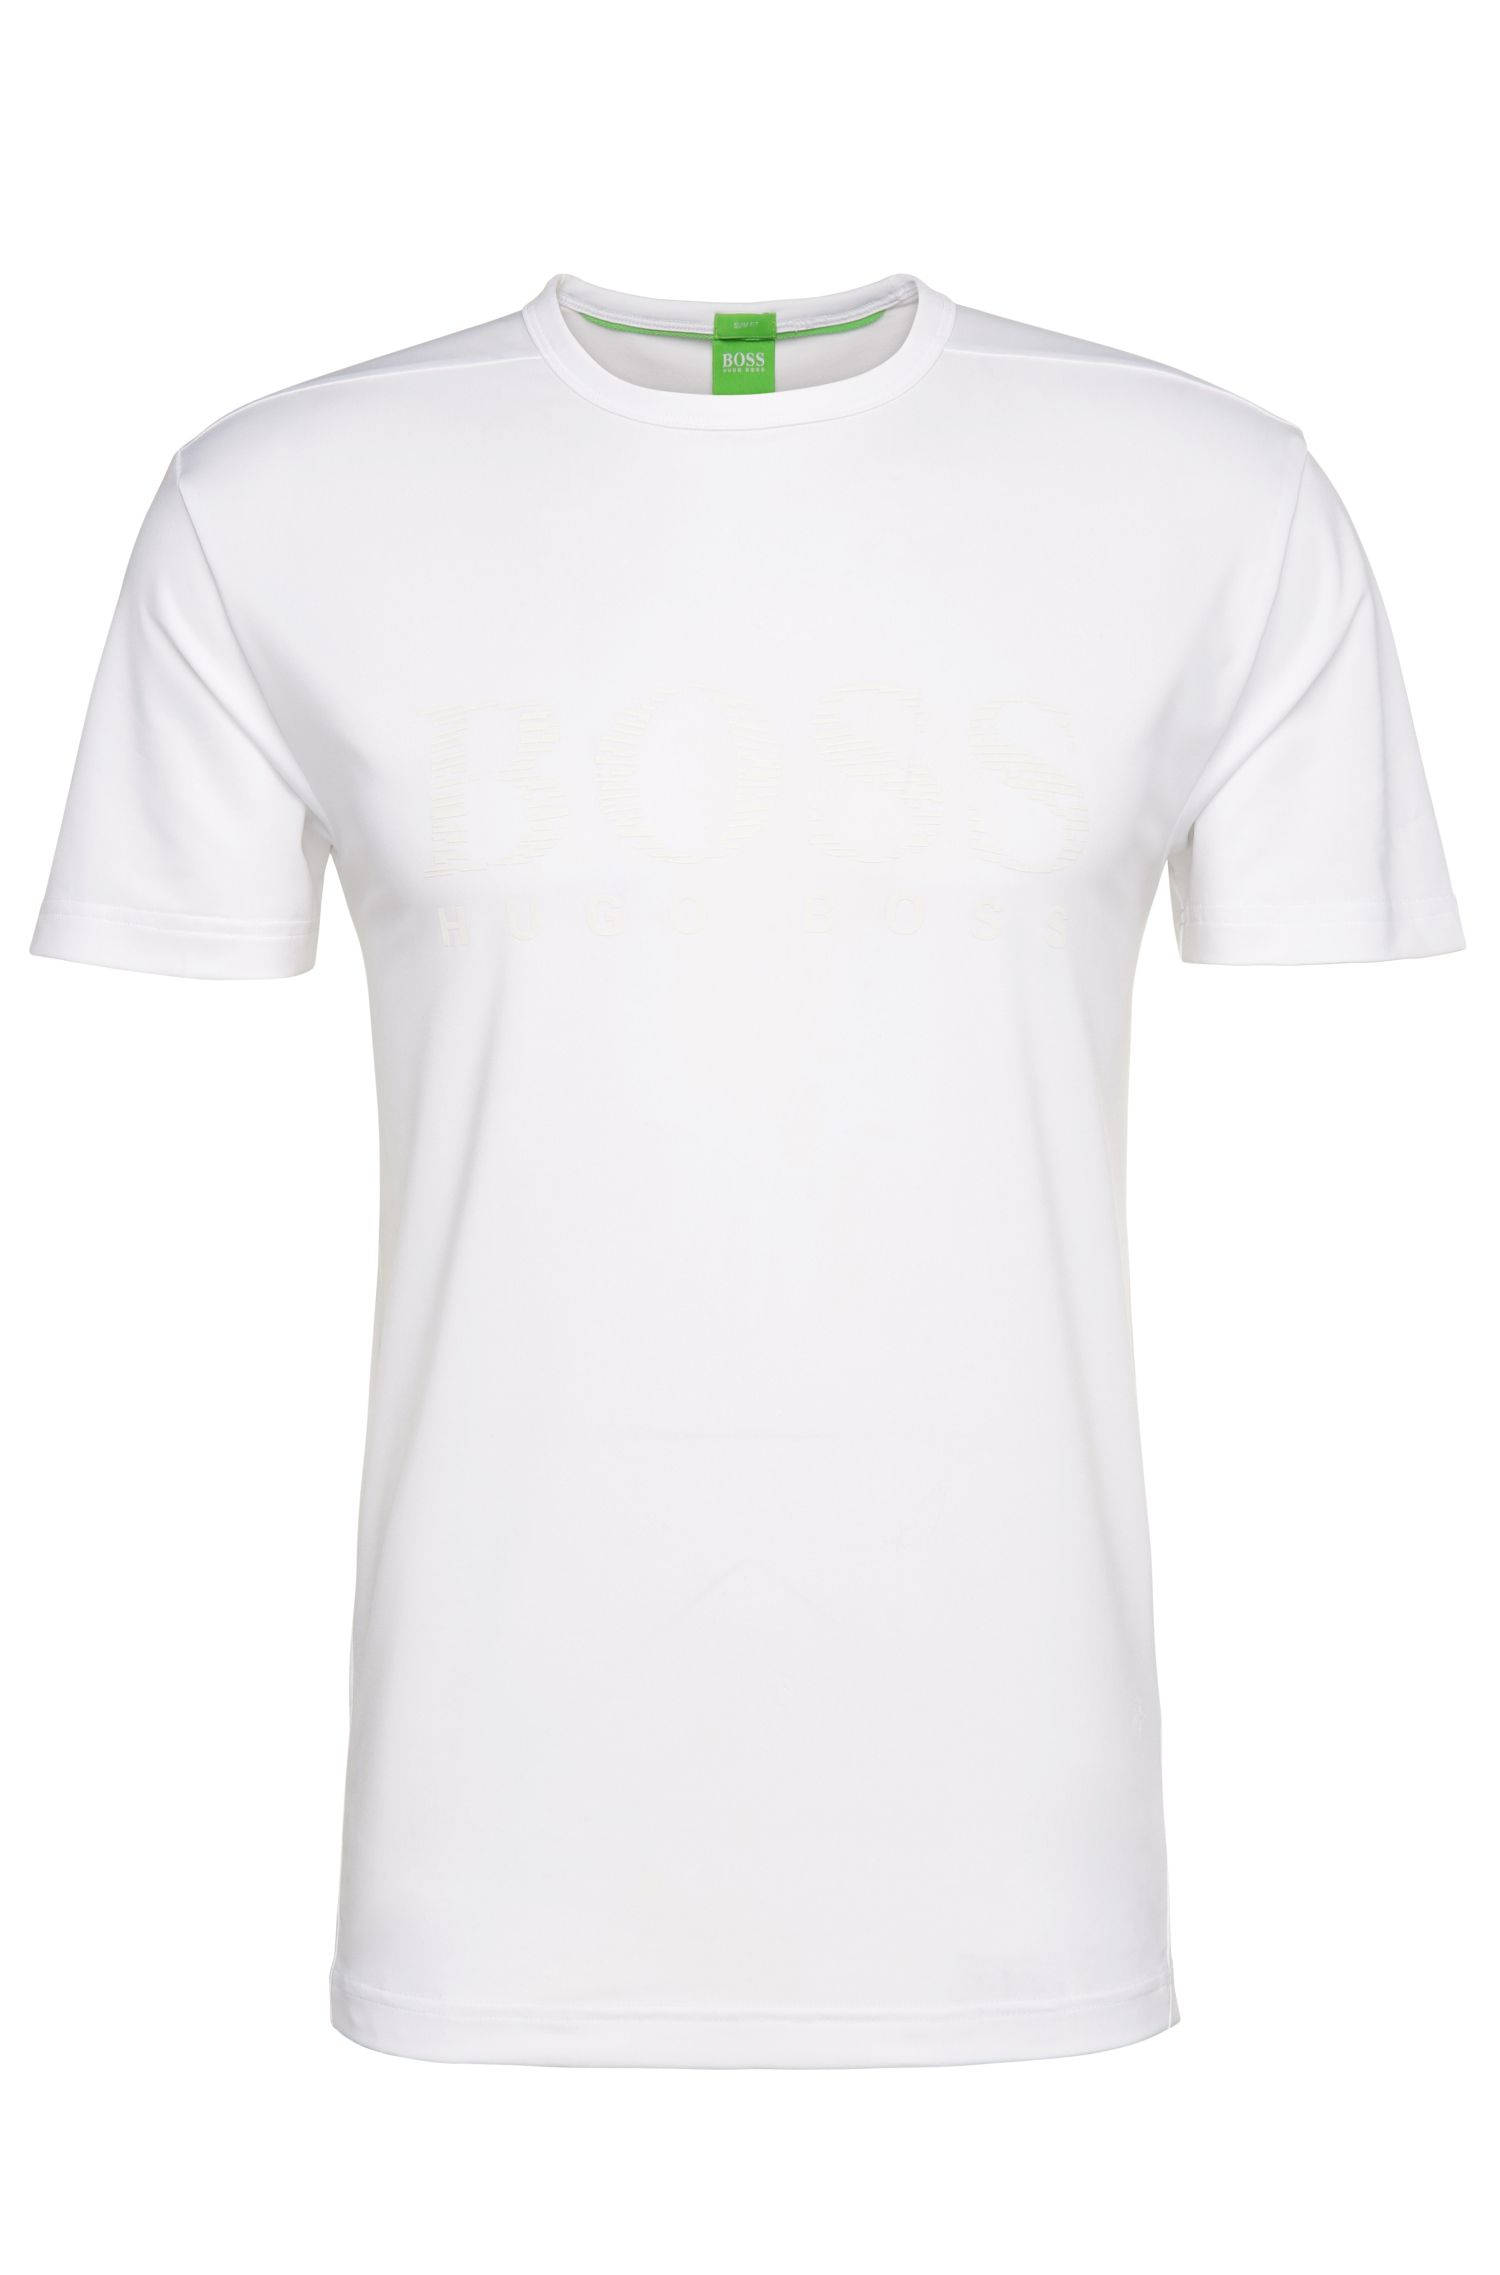 Slim-fit t-shirt in stretchy material blend: 'Tianotech'